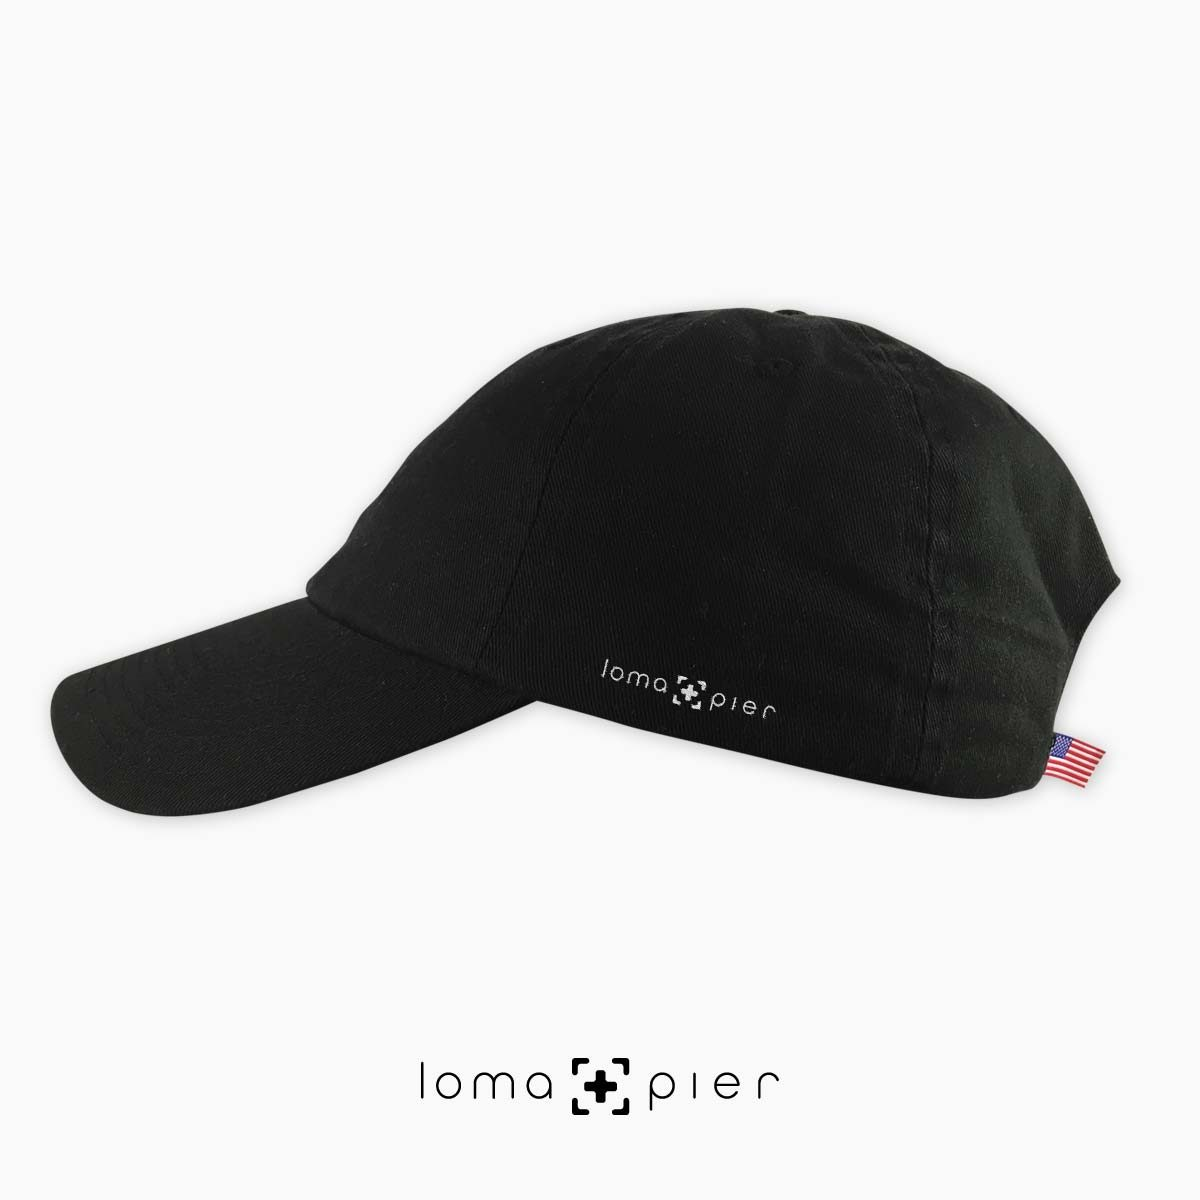 black unstructured dad hat with loma+pier logo on left side by loma+pier hat store made in the USA